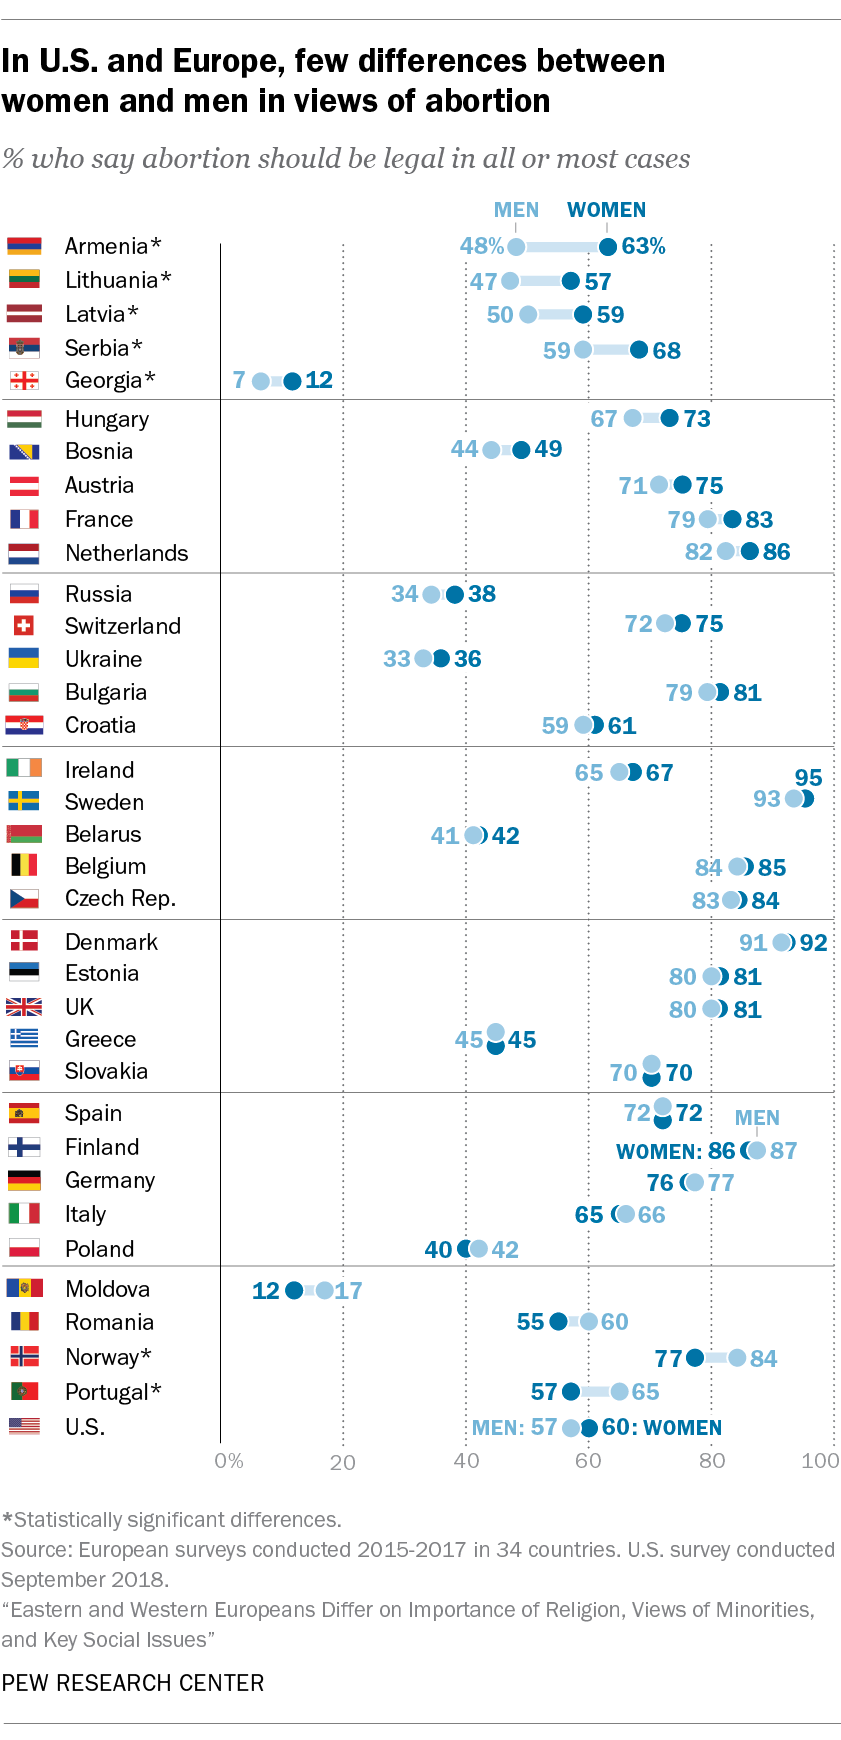 In U.S. and Europe, few differences between women and men in views of abortion